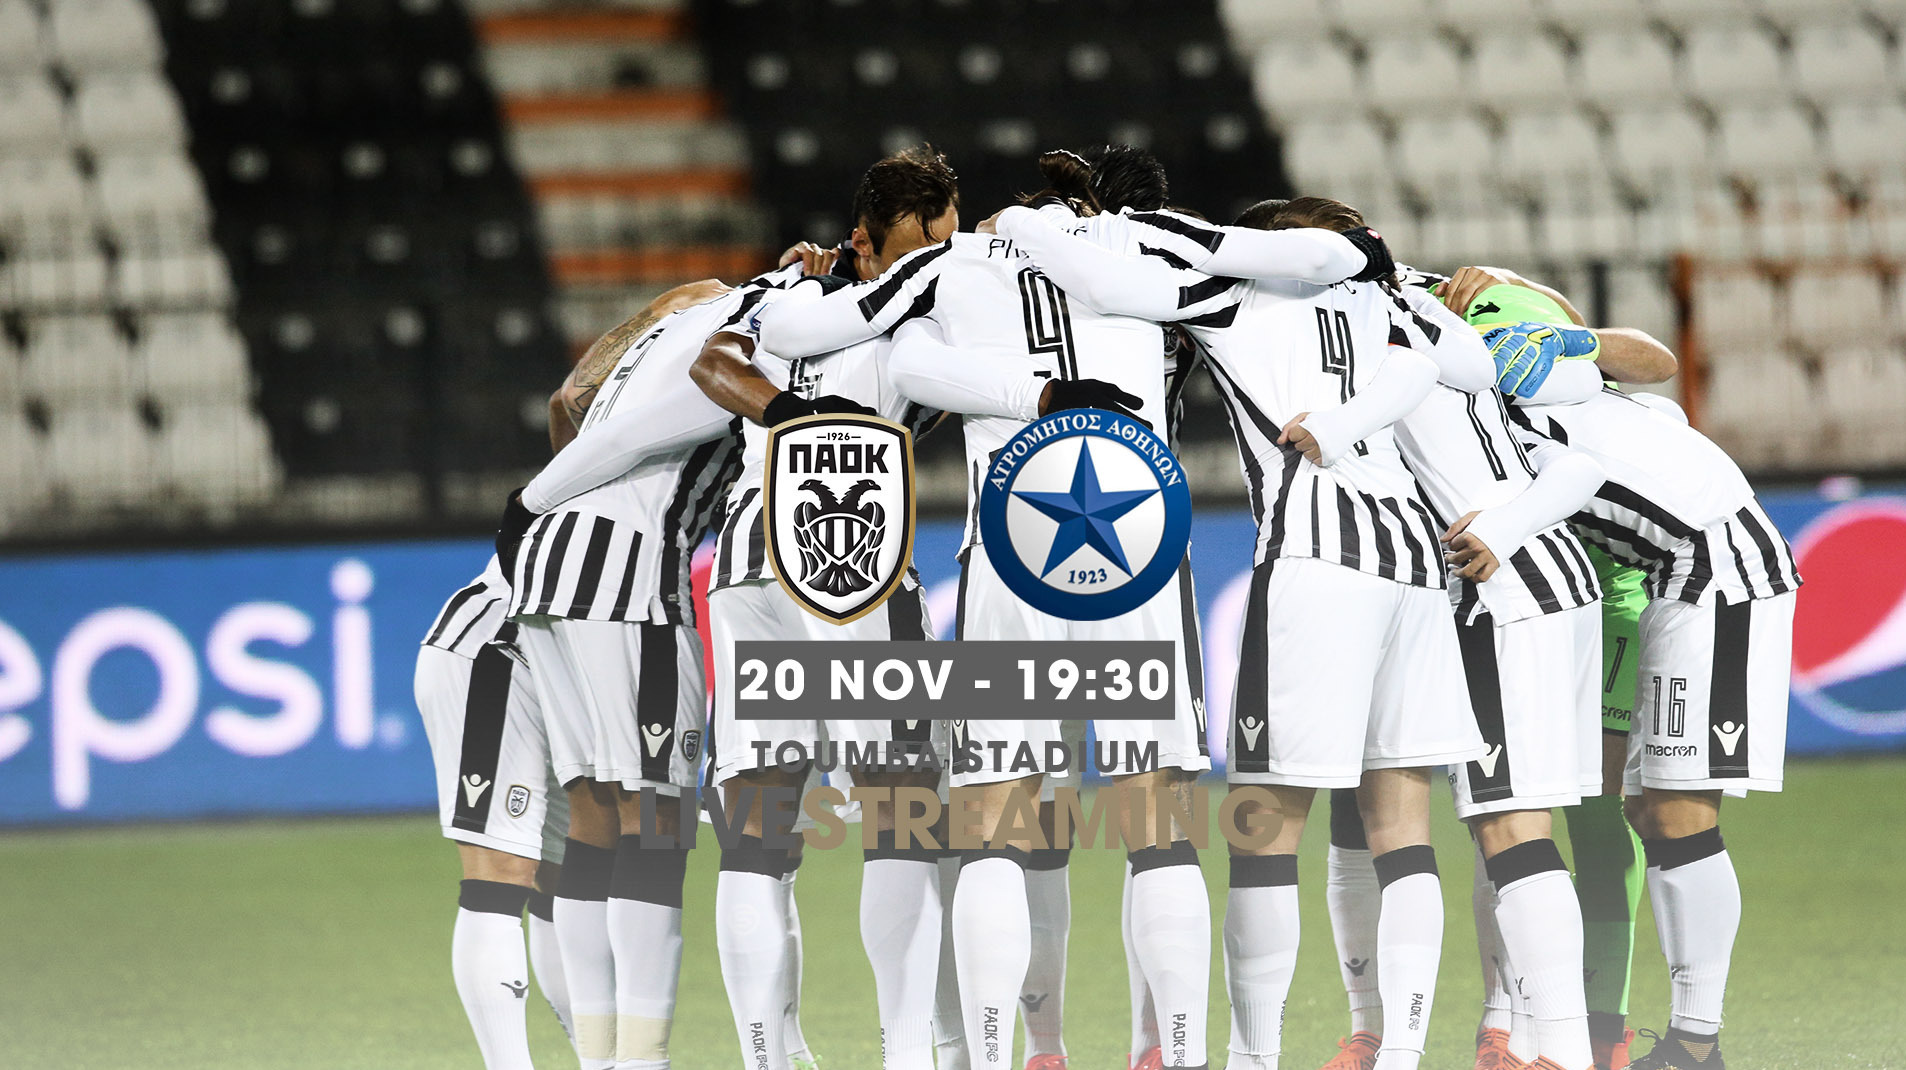 ΠΑΟΚ - ΑΤΡΟΜΗΤΟΣ  Paok - Atromitos  live streaming